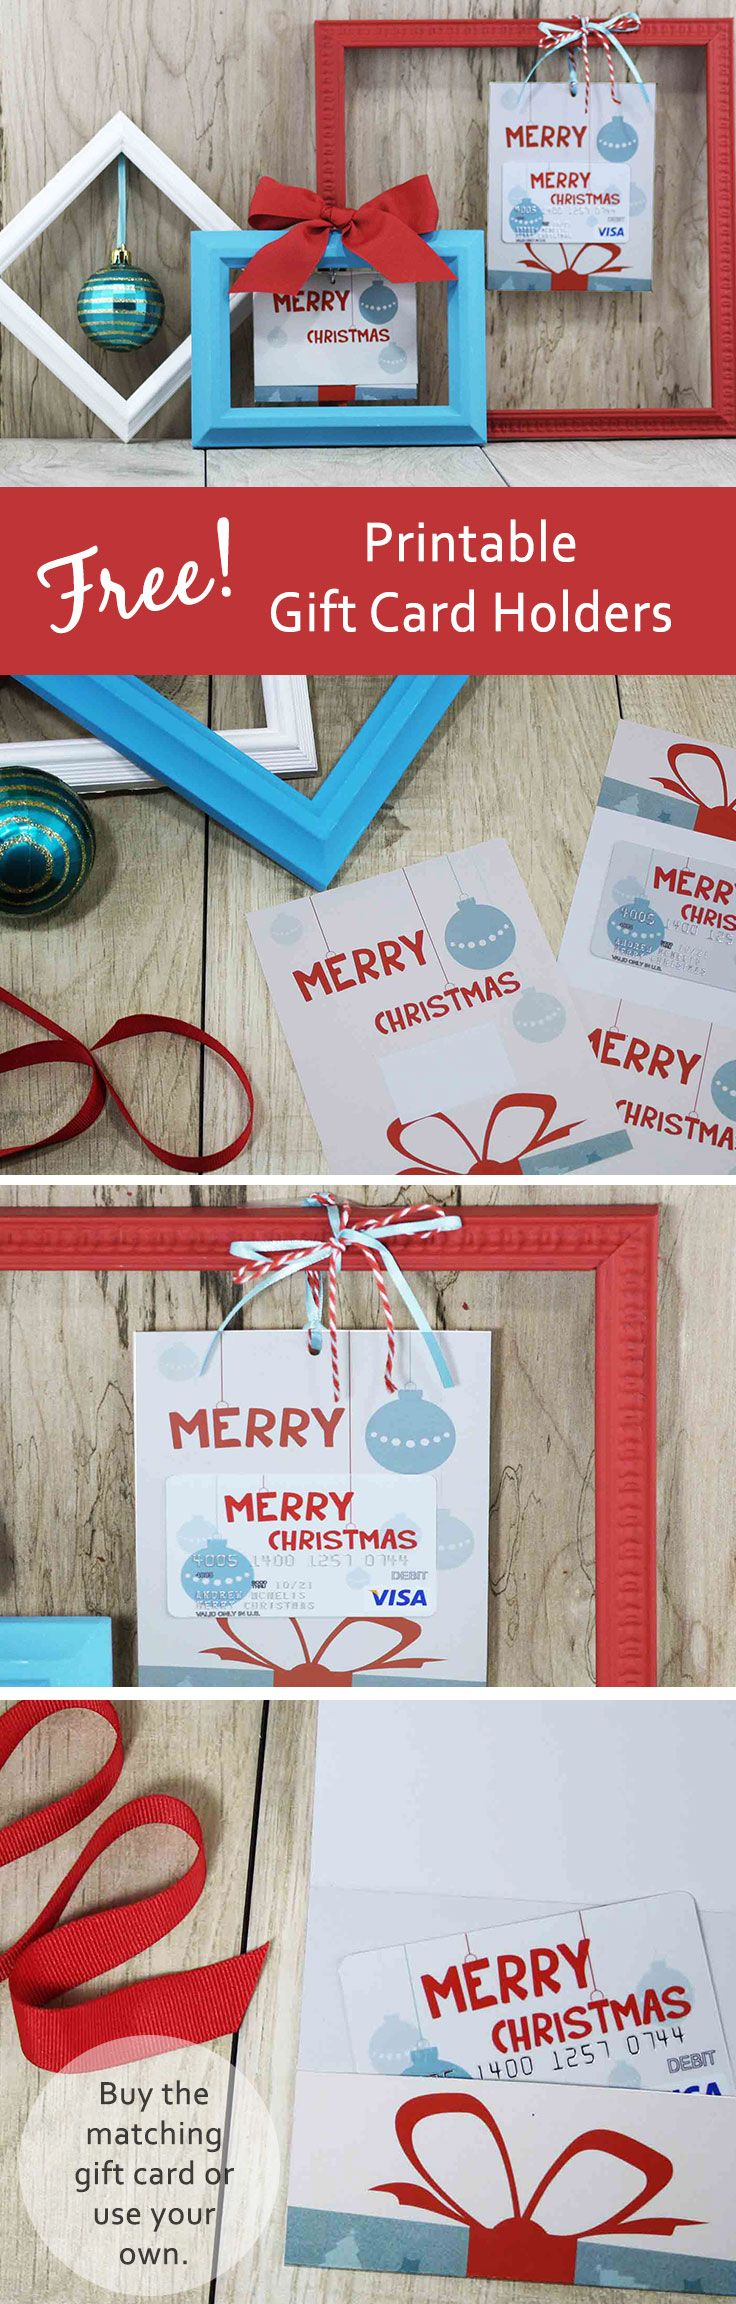 Free printable gift card holder with whimsical Merry Christmas design perfectly matches the gift card inside. Add a store gift card or cash instead. Easy to make and fun to give.